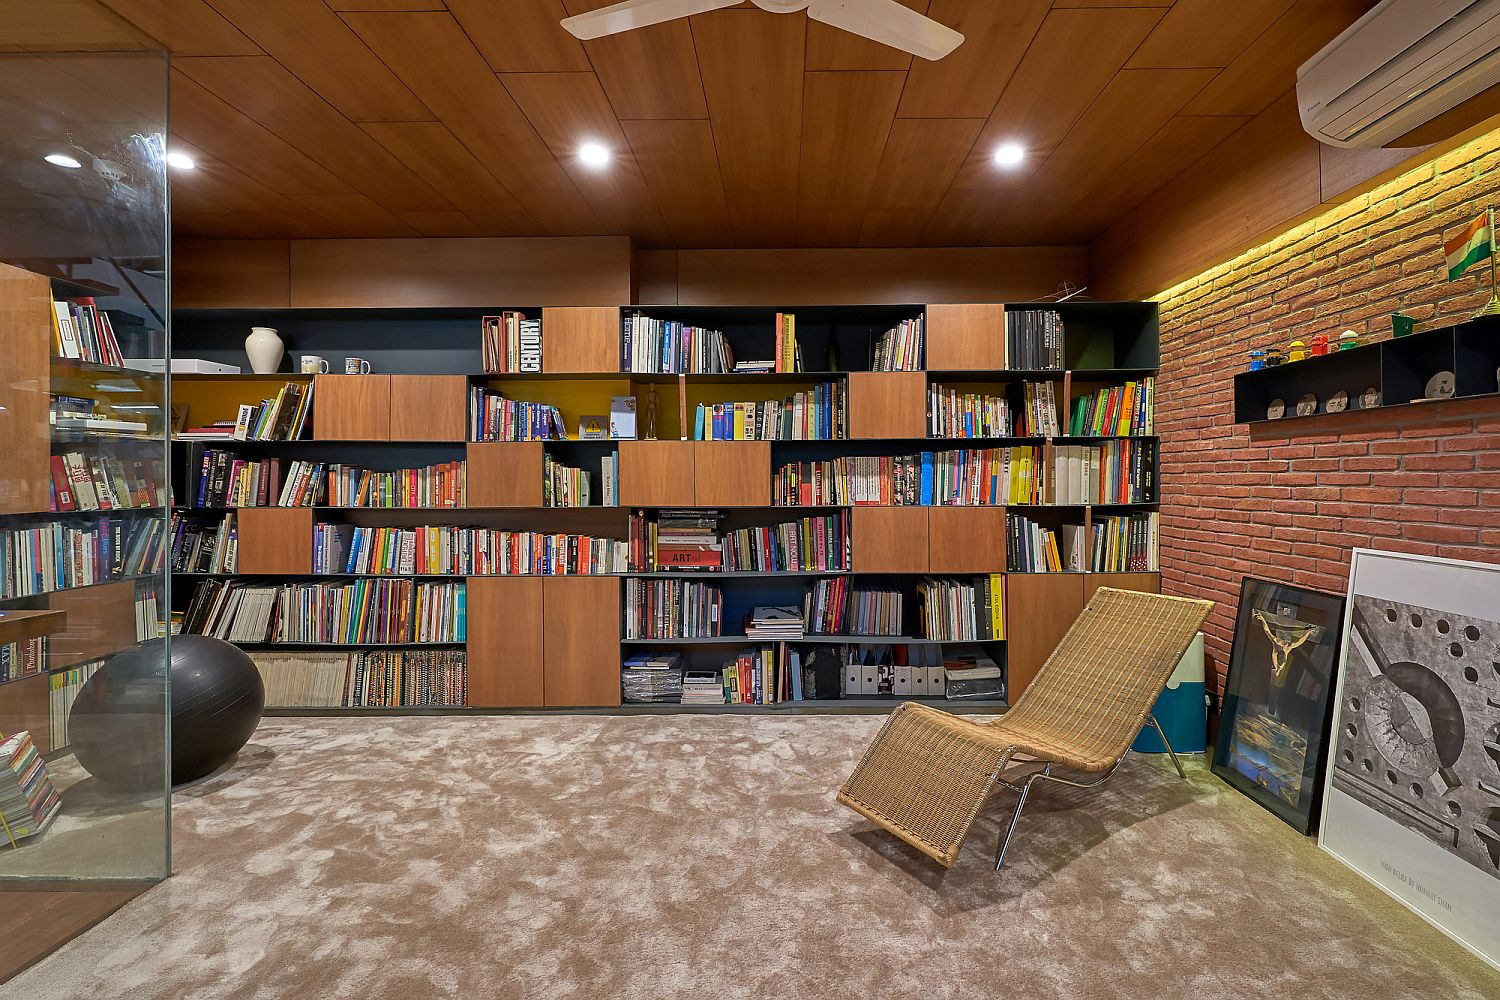 Library in brick, concrete and wood with ample shelf space